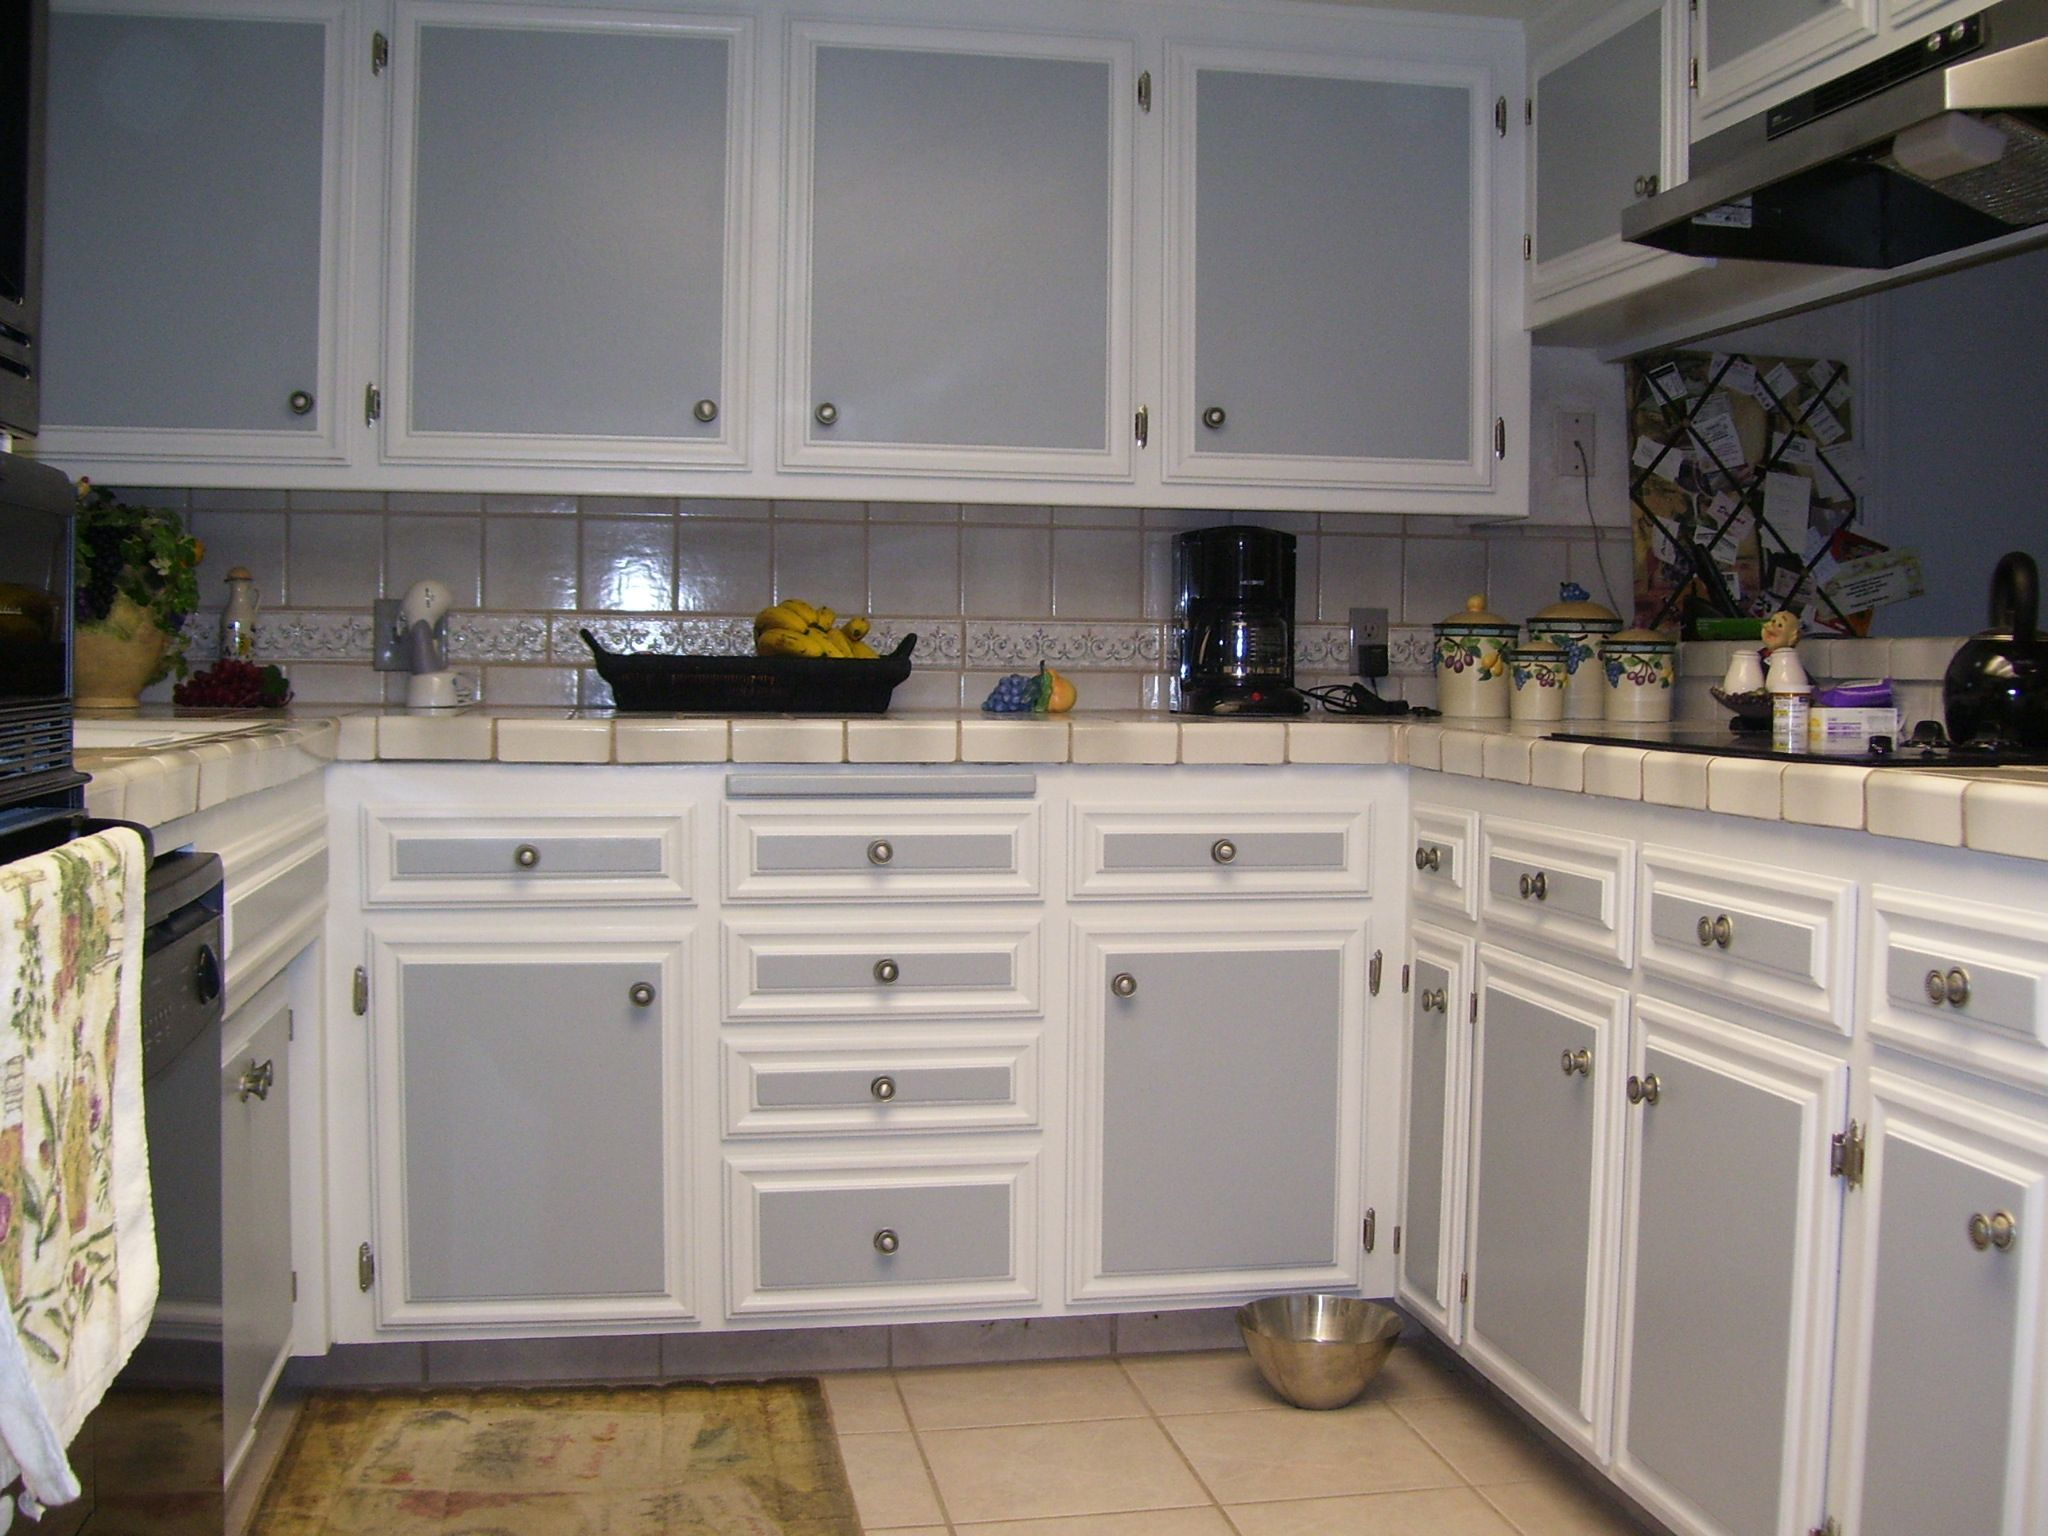 Brilliant Two Tone Painted Kitchen Cabinets Ideas 35 To Reinspire Your Favorite Spot In The House L For Decorating